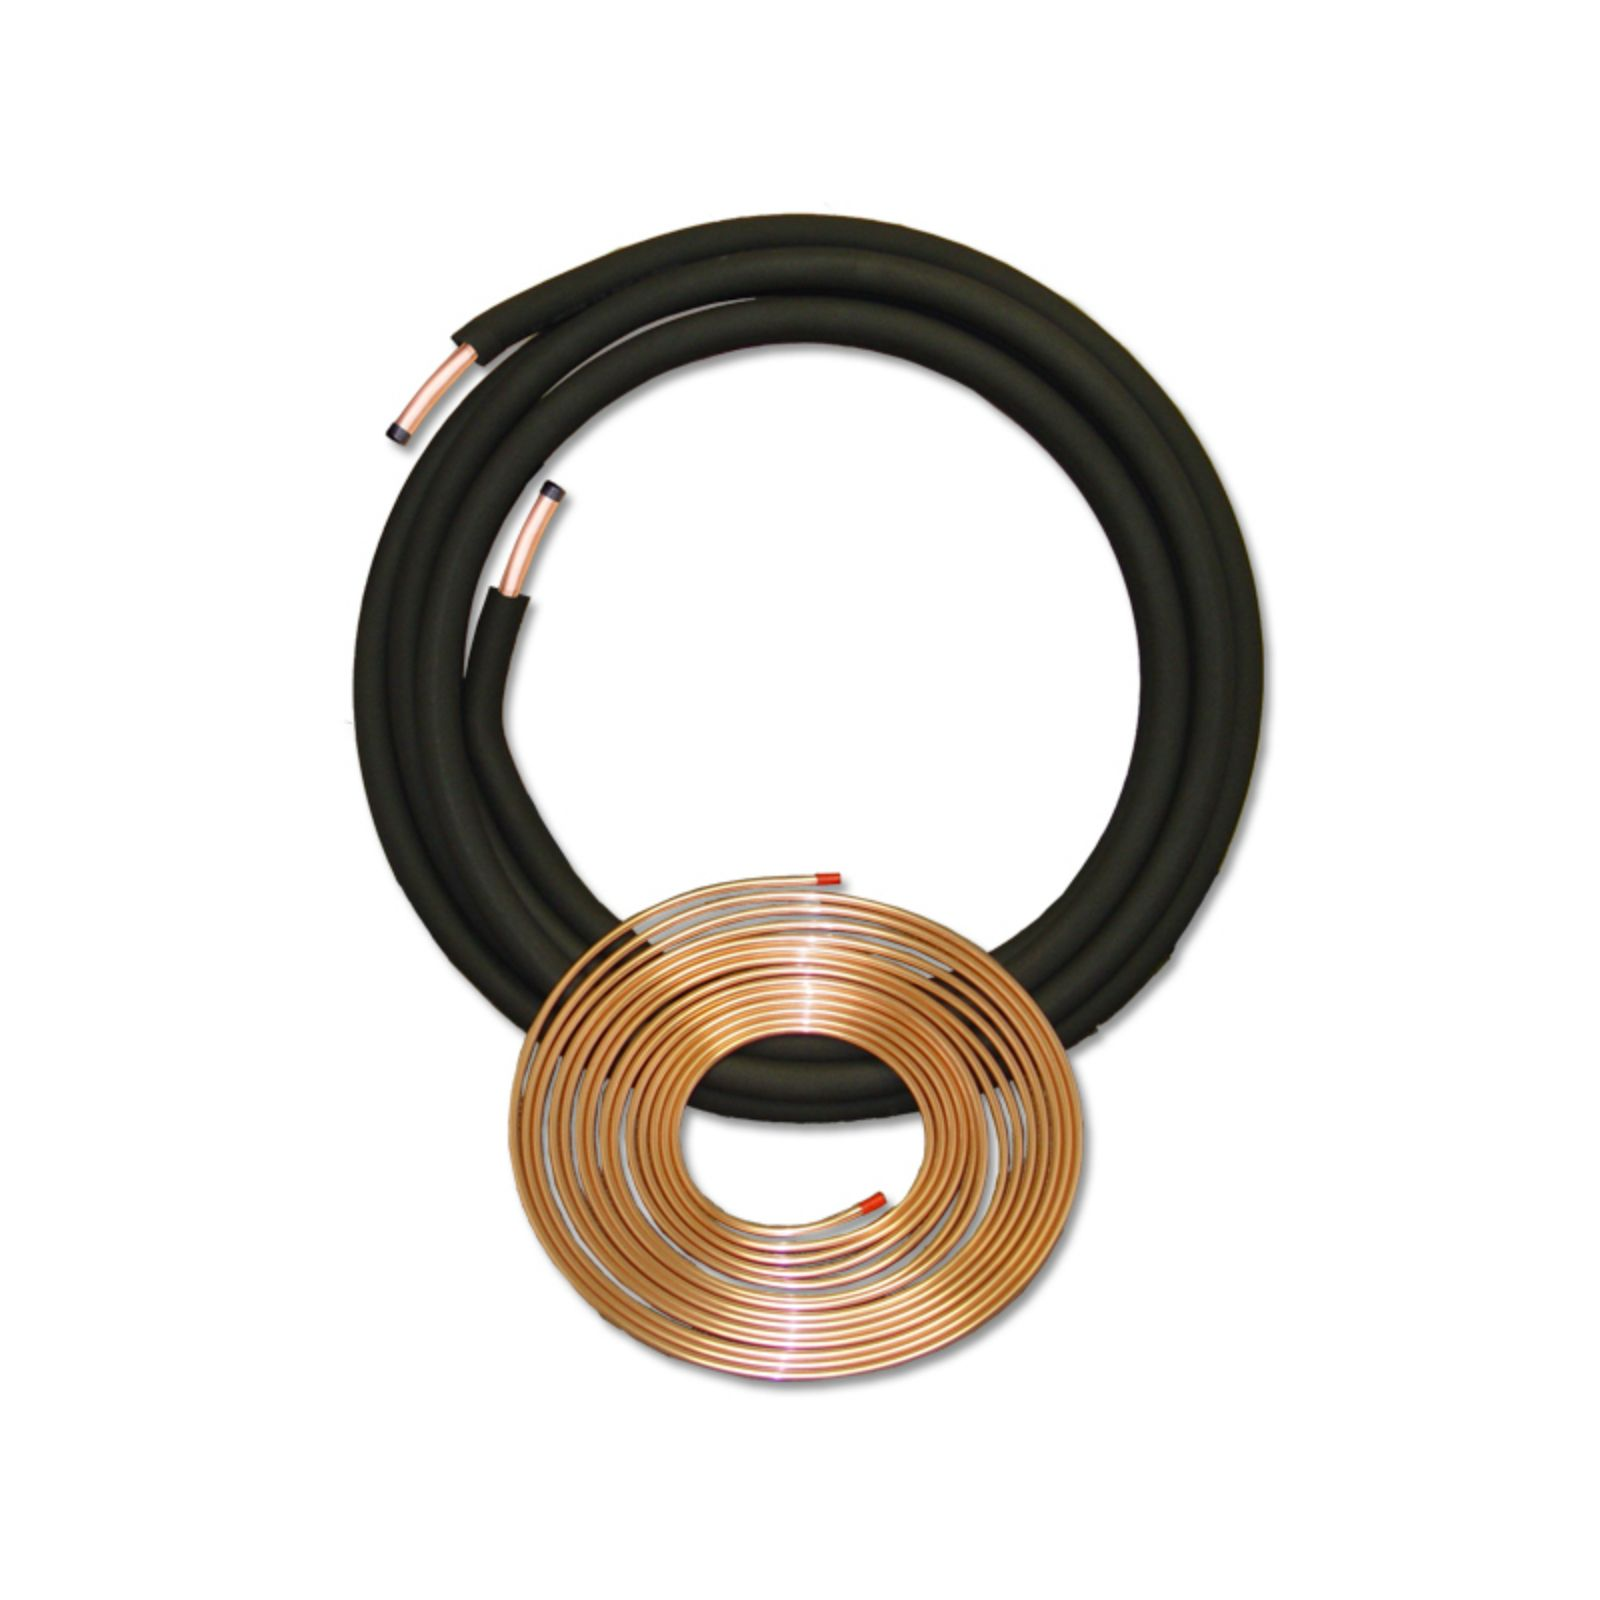 "JMF 061408500 - Plain End Line Set with Straight End Suction Line, 3/8"" X 7/8"" X 1/2"" X 50'"